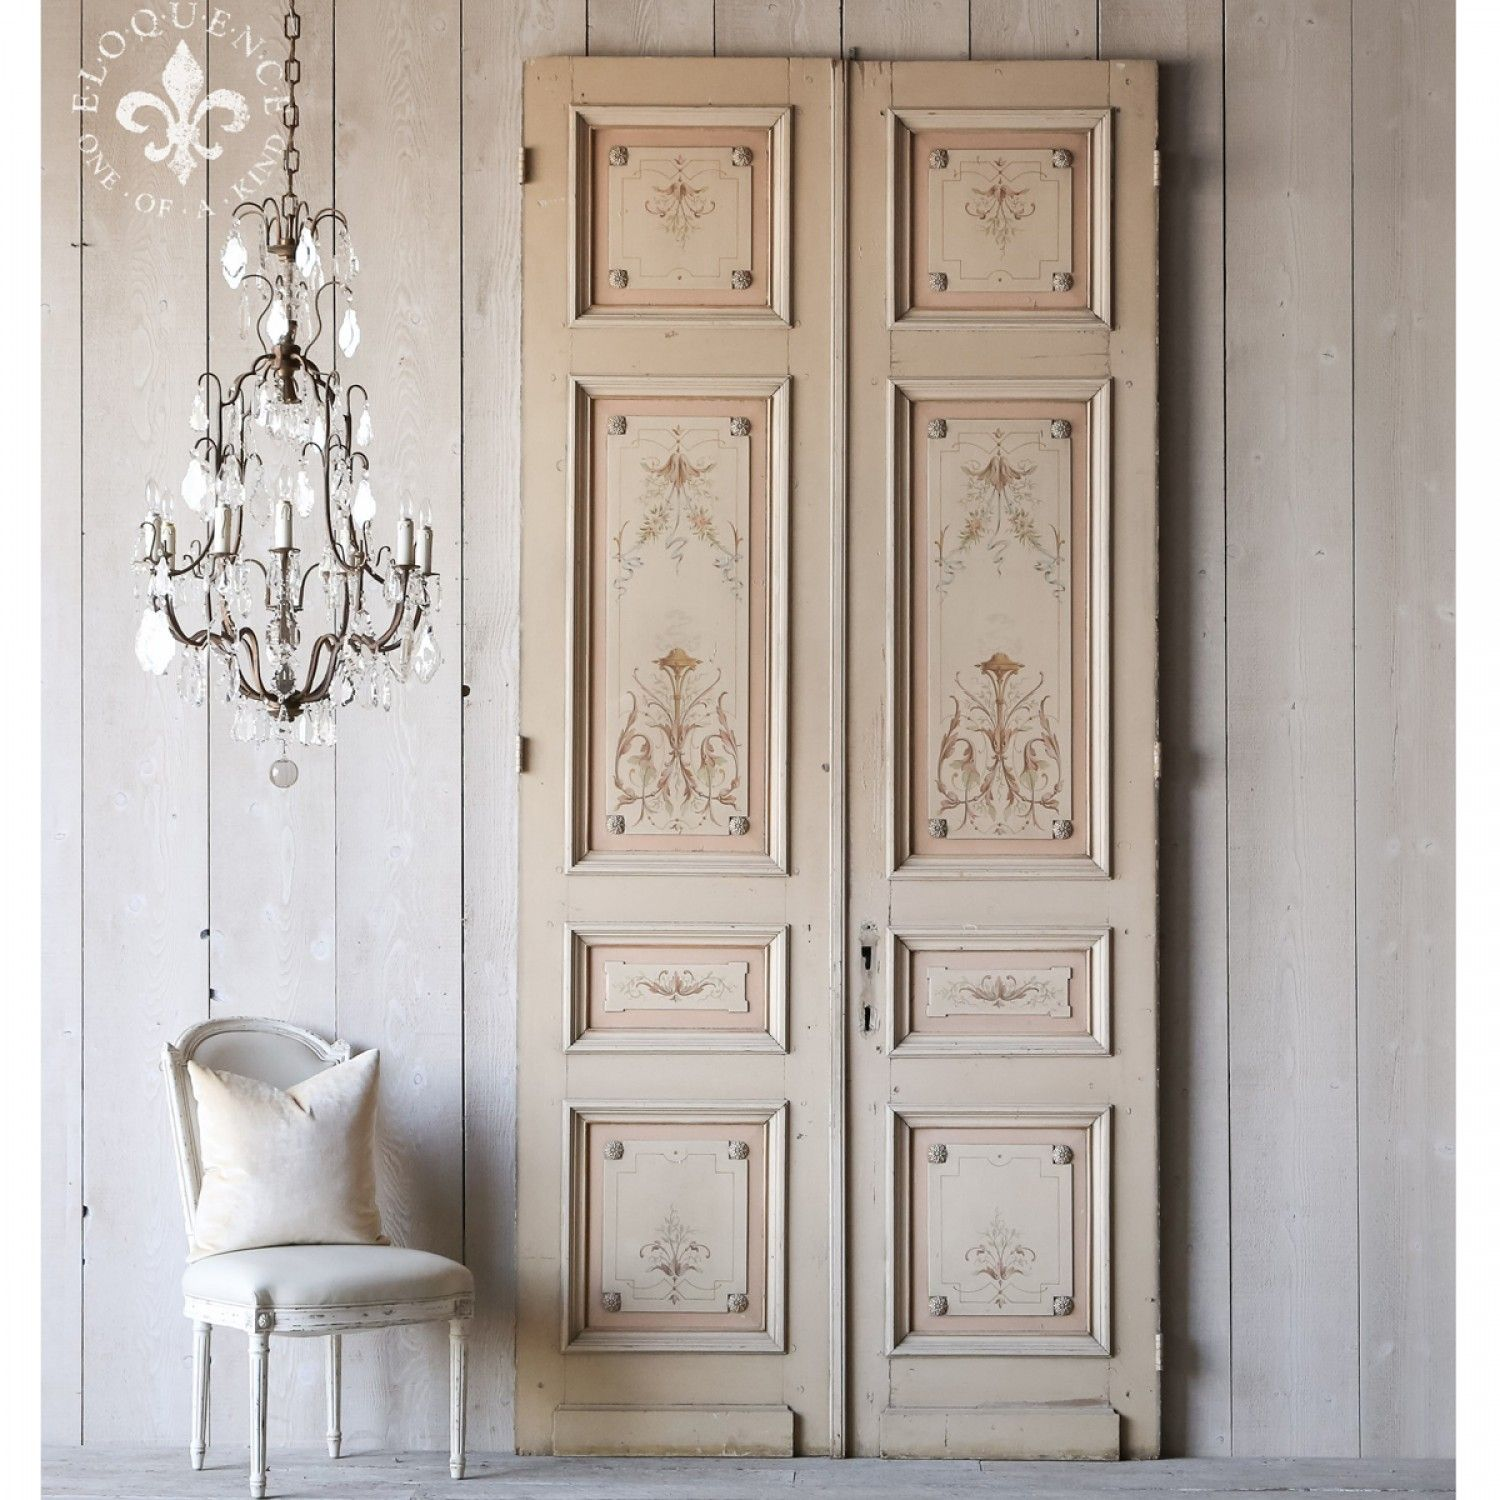 Porte De Placard A La Francaise Home Incredible Pair Of Hand Painted French Interior